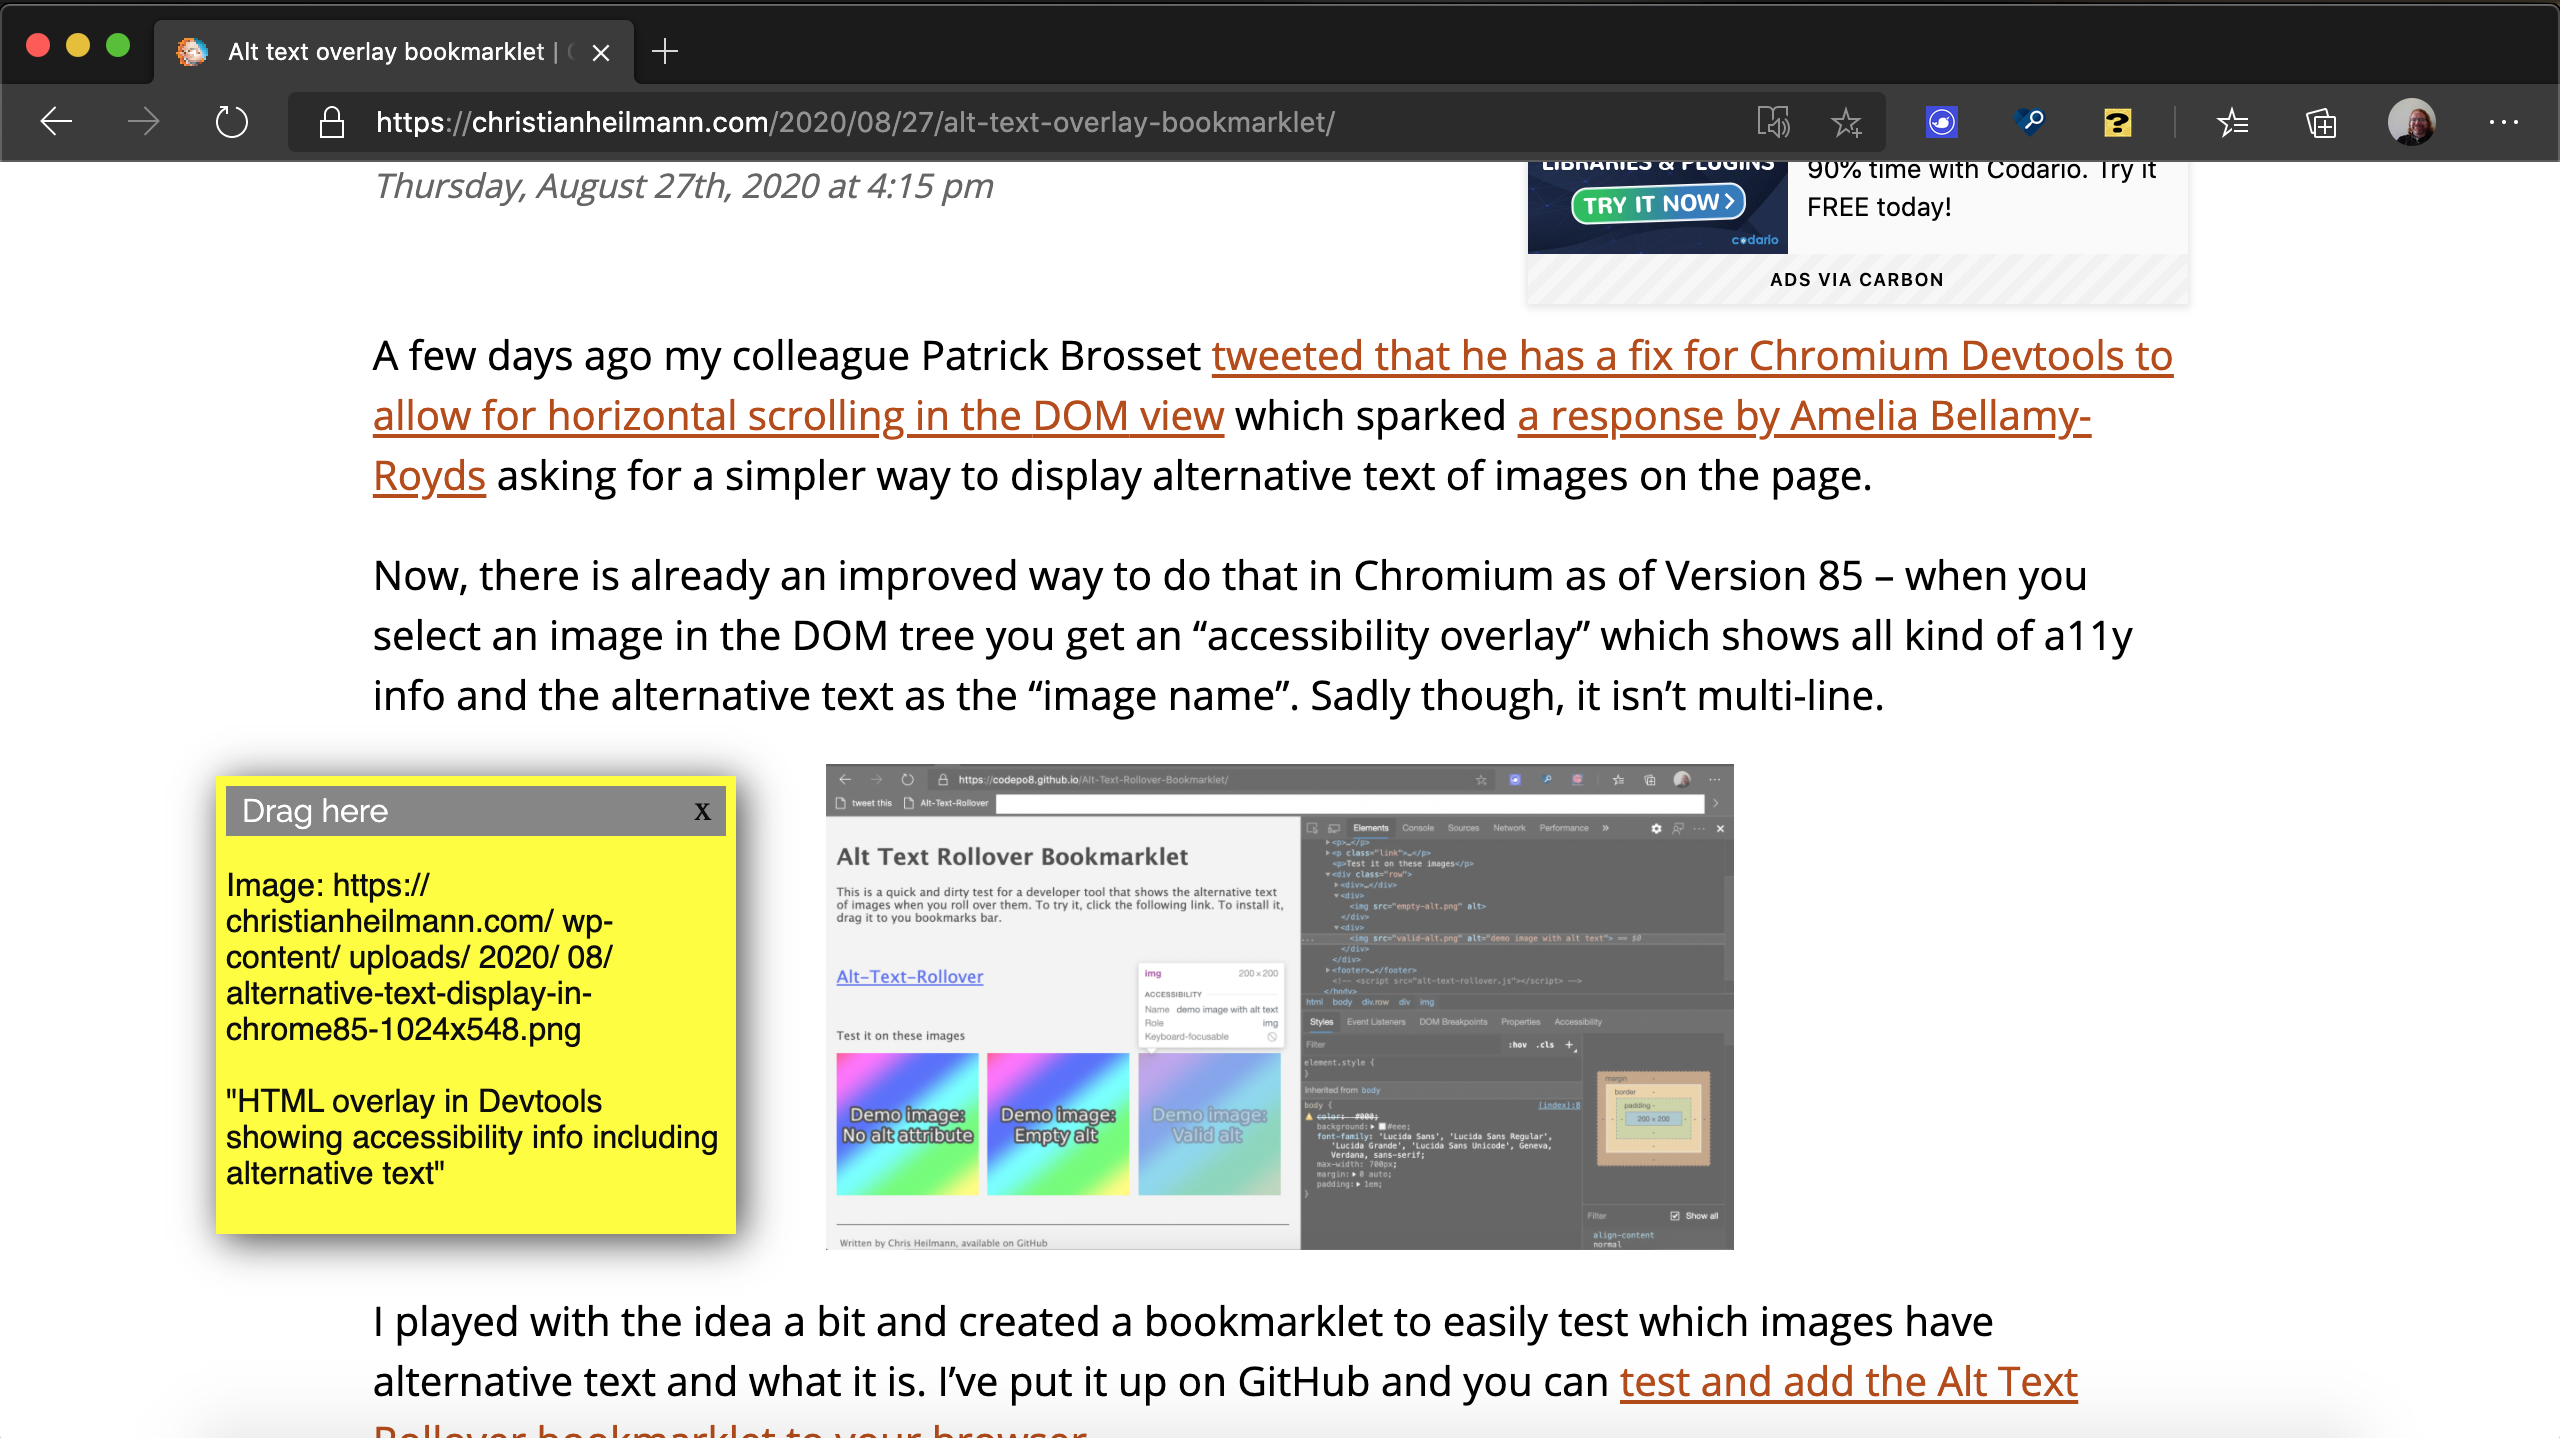 Christian Heilmann's blog with the sticky note overlay